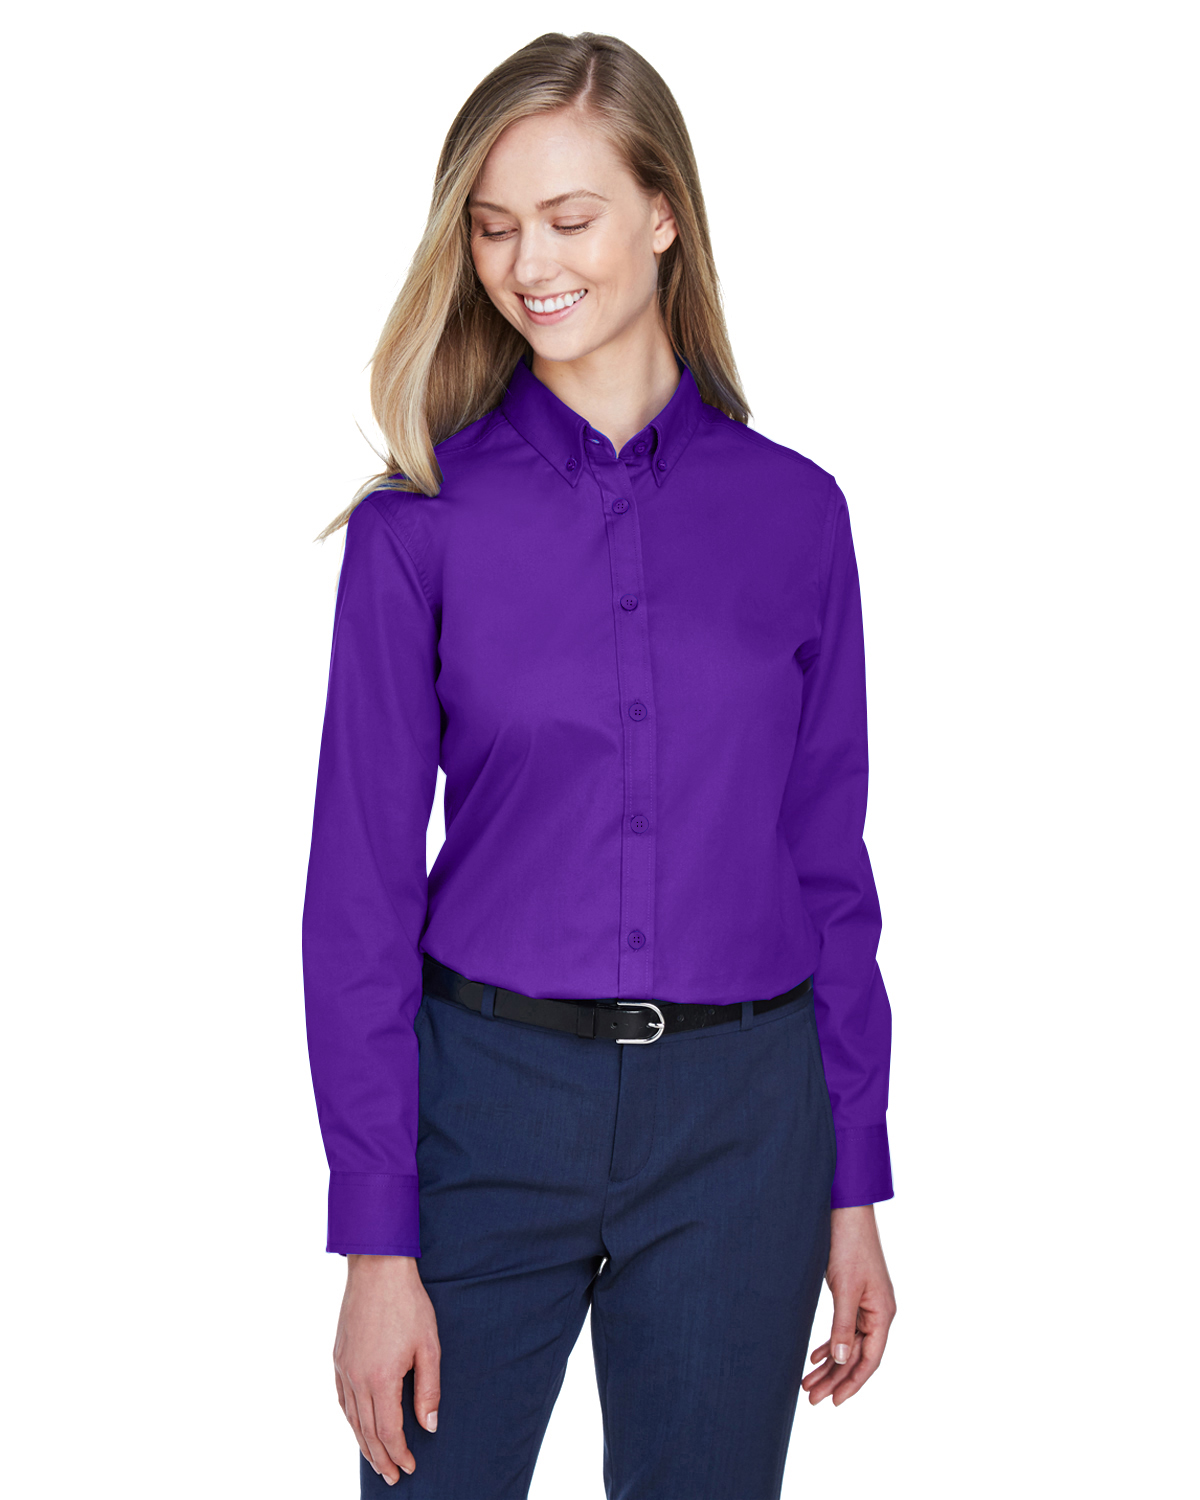 AUTO-CLUB-78193 Core 365 Ladies' Operate Long-Sleeve Twill Shirt